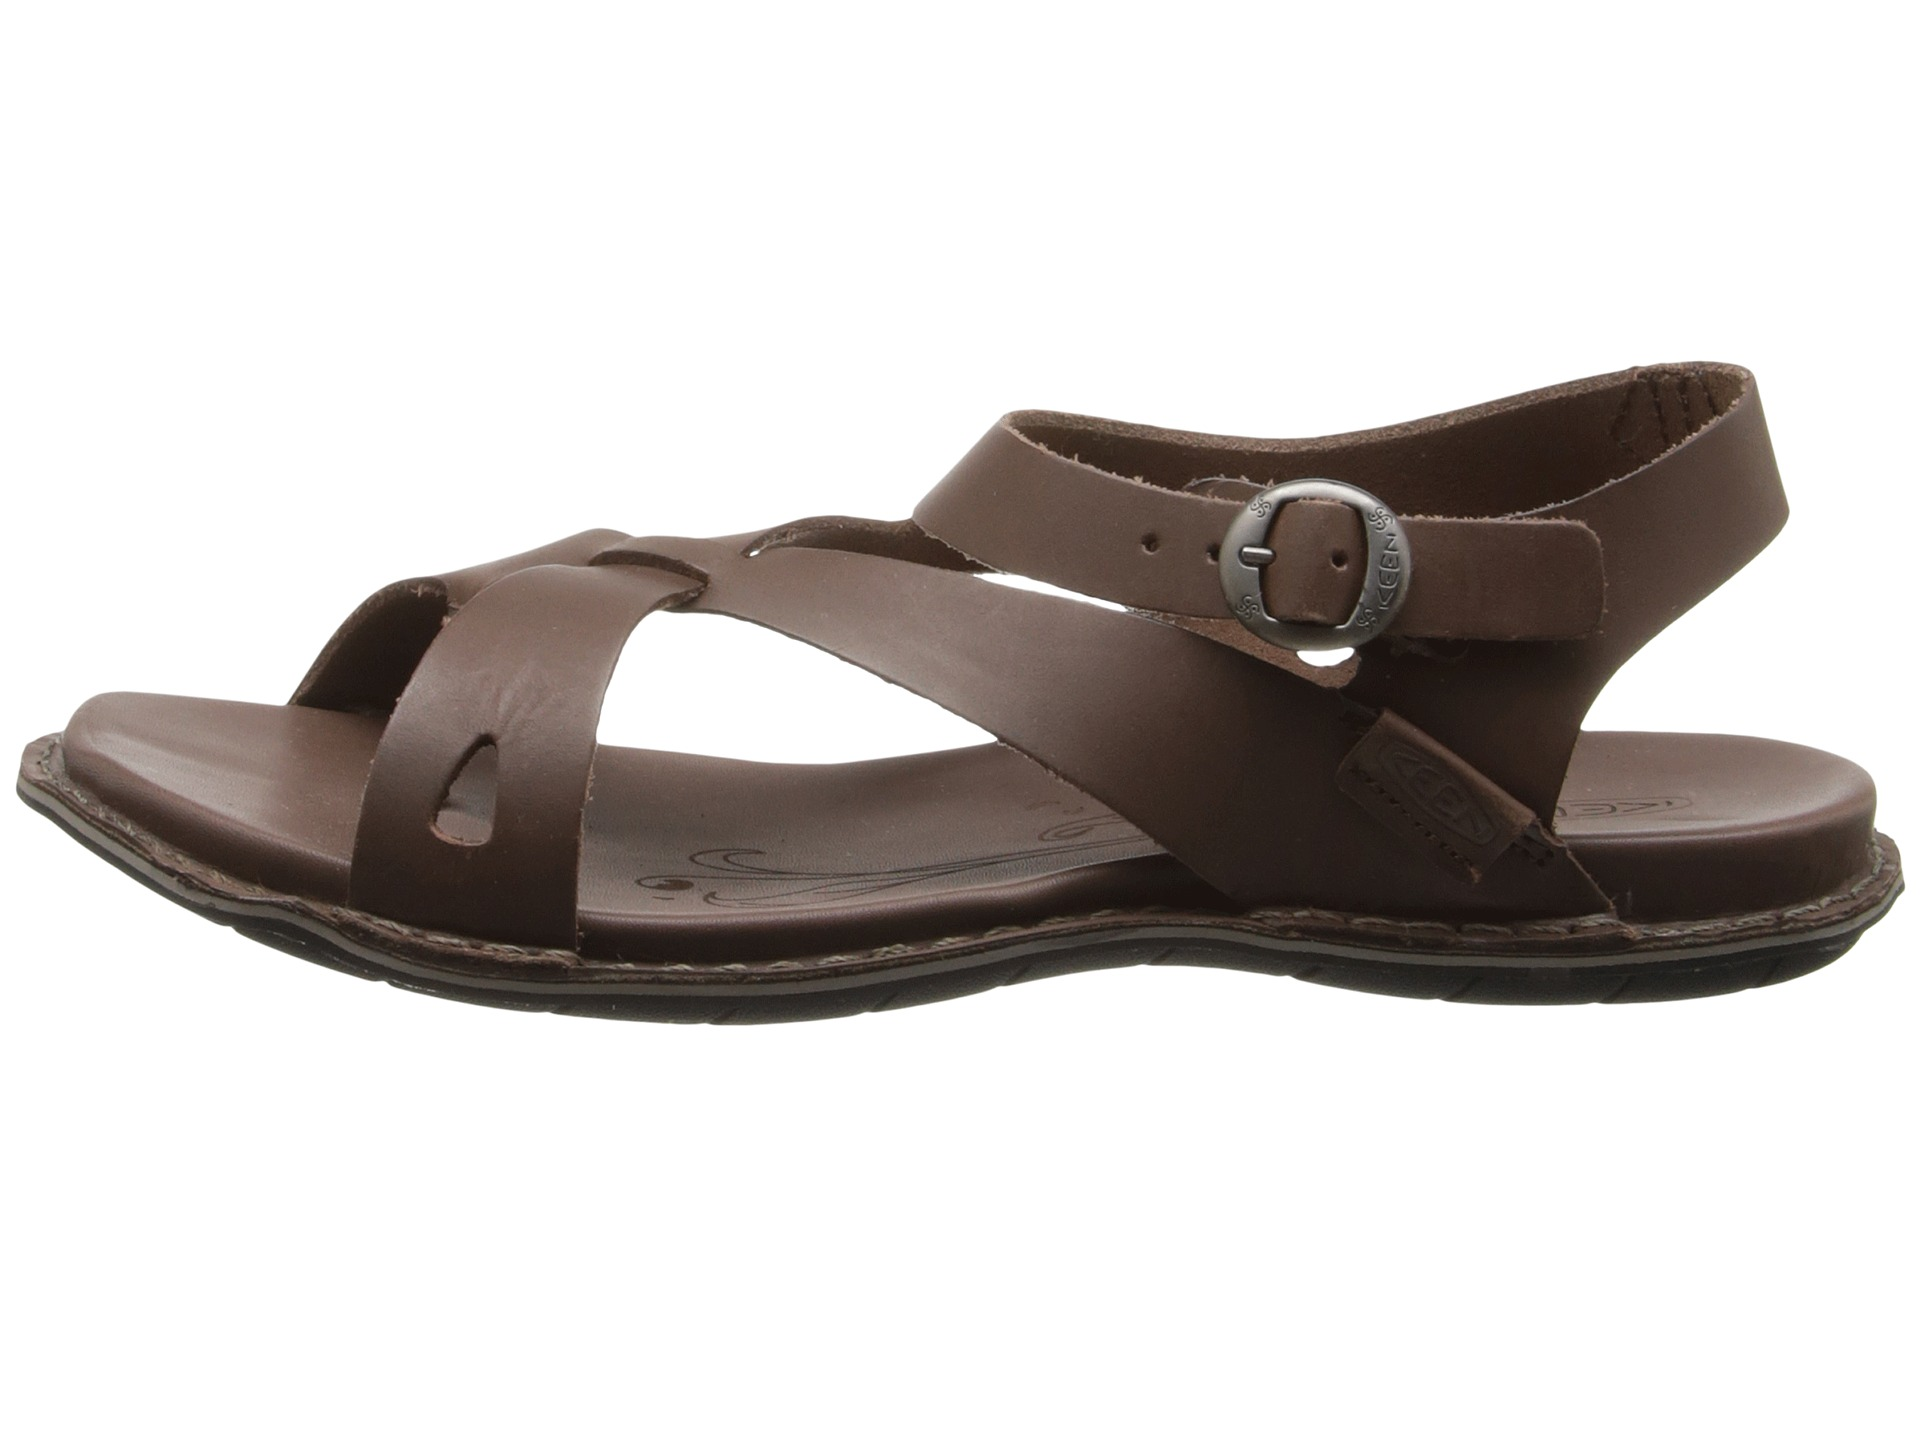 Zappos Keen Shoes For Women Low Wedge Sandals